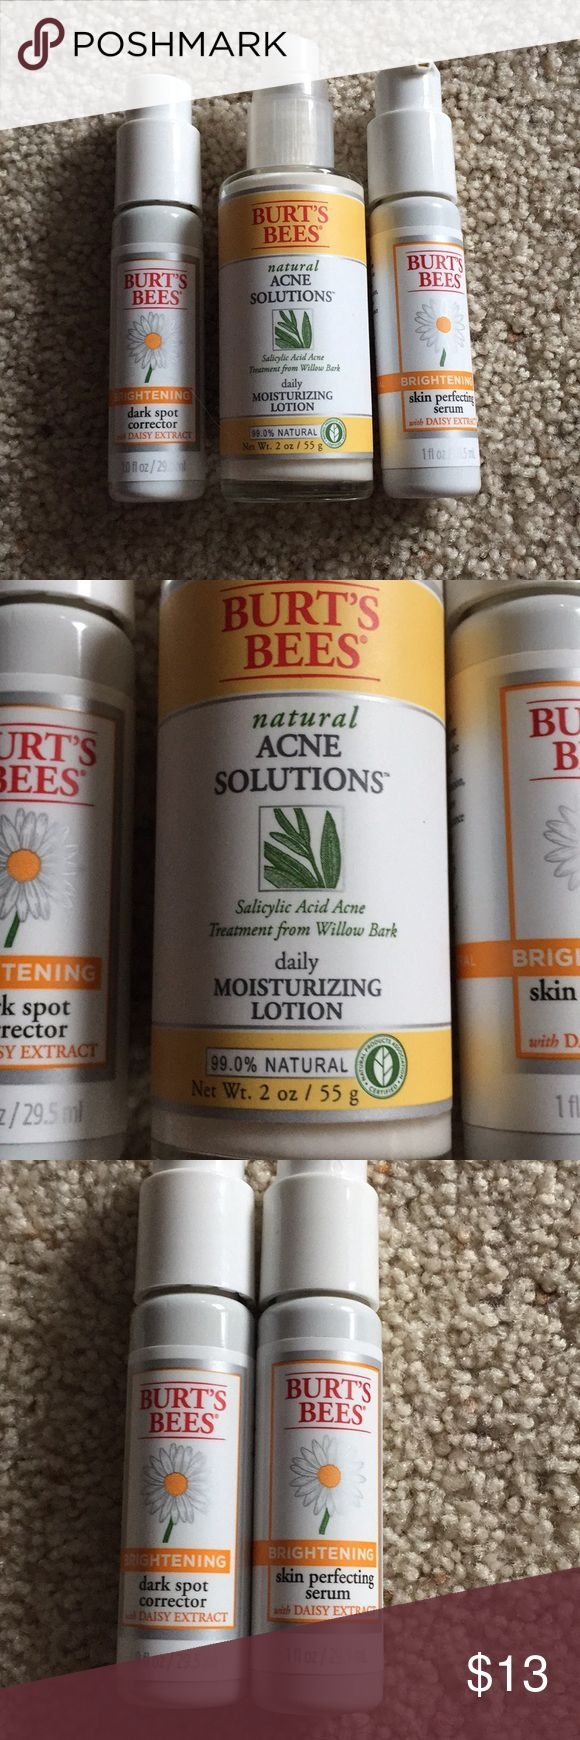 Bundle Burts Bees Face products Acne solutions daily moisturizer lotion (2oz) 3/4 full, 2 dark spot corrector (1oz) 1 Bottle almost full and the other is half way. Burts Bees Other